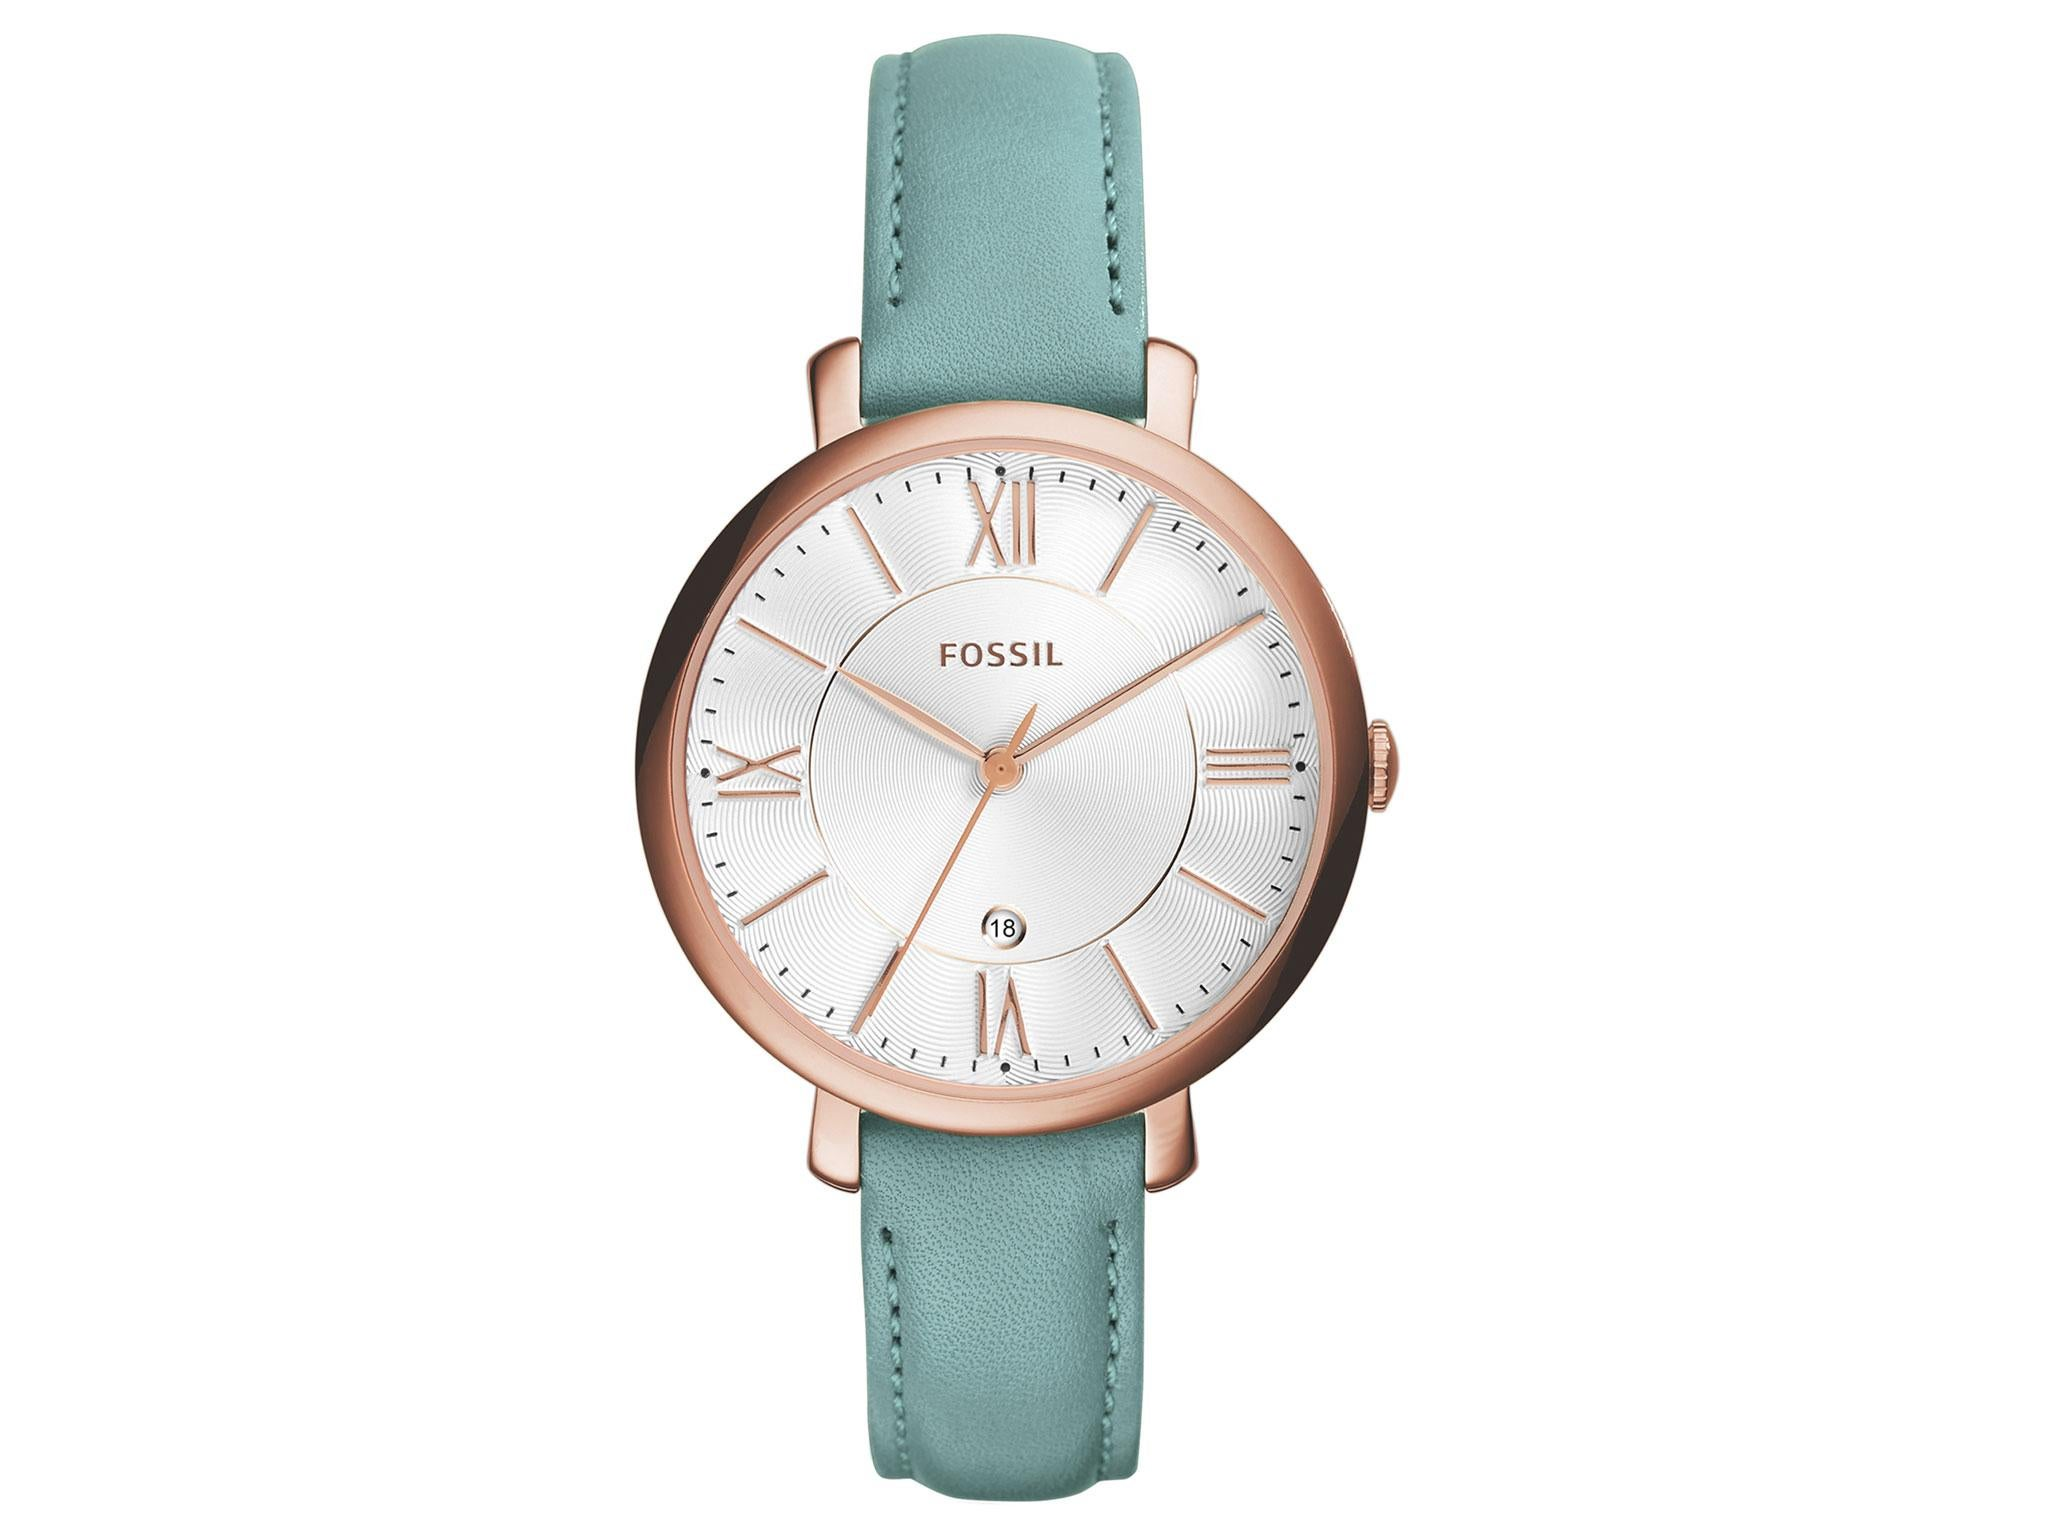 12 best watches for women | The Independent | The Independent